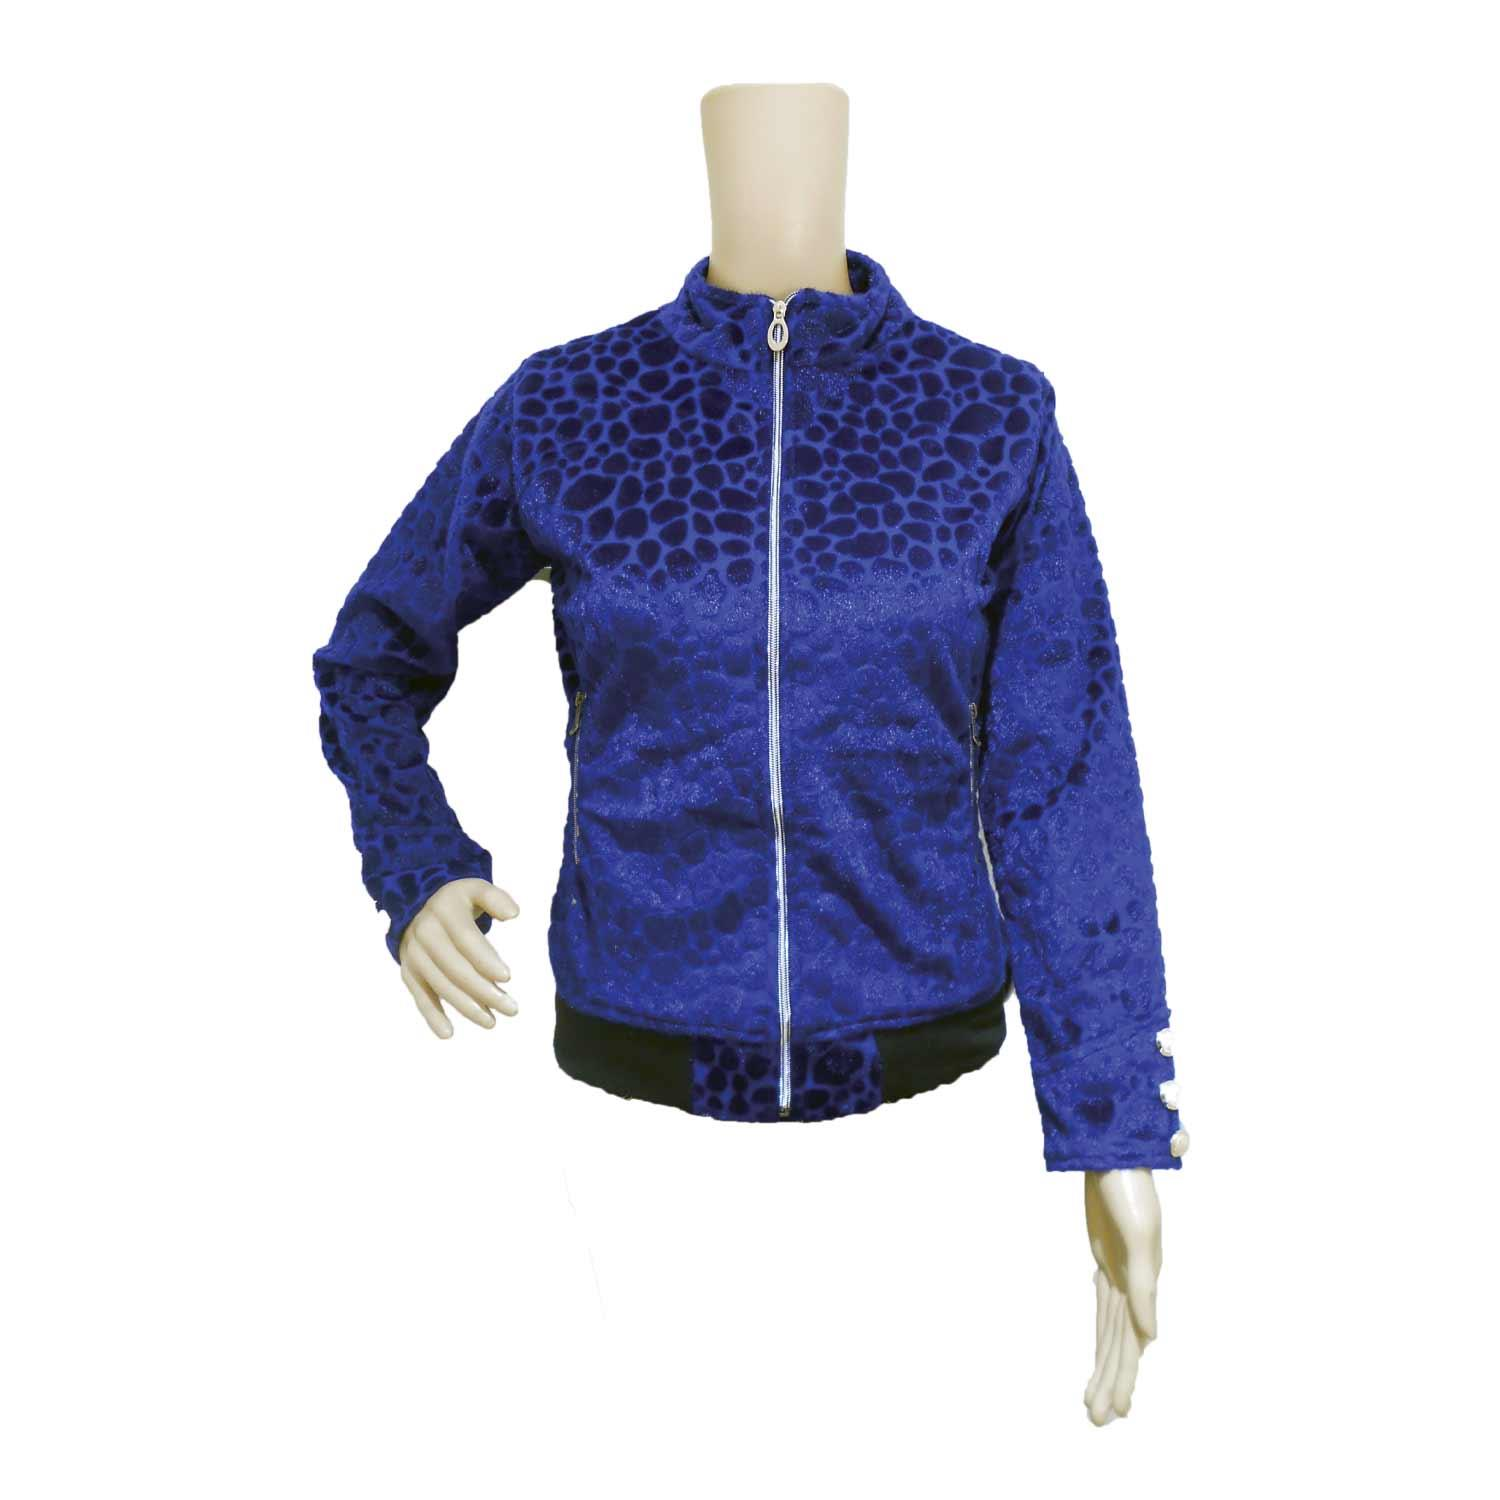 LADIE'S MISFIT JACKET VELVET BLUE